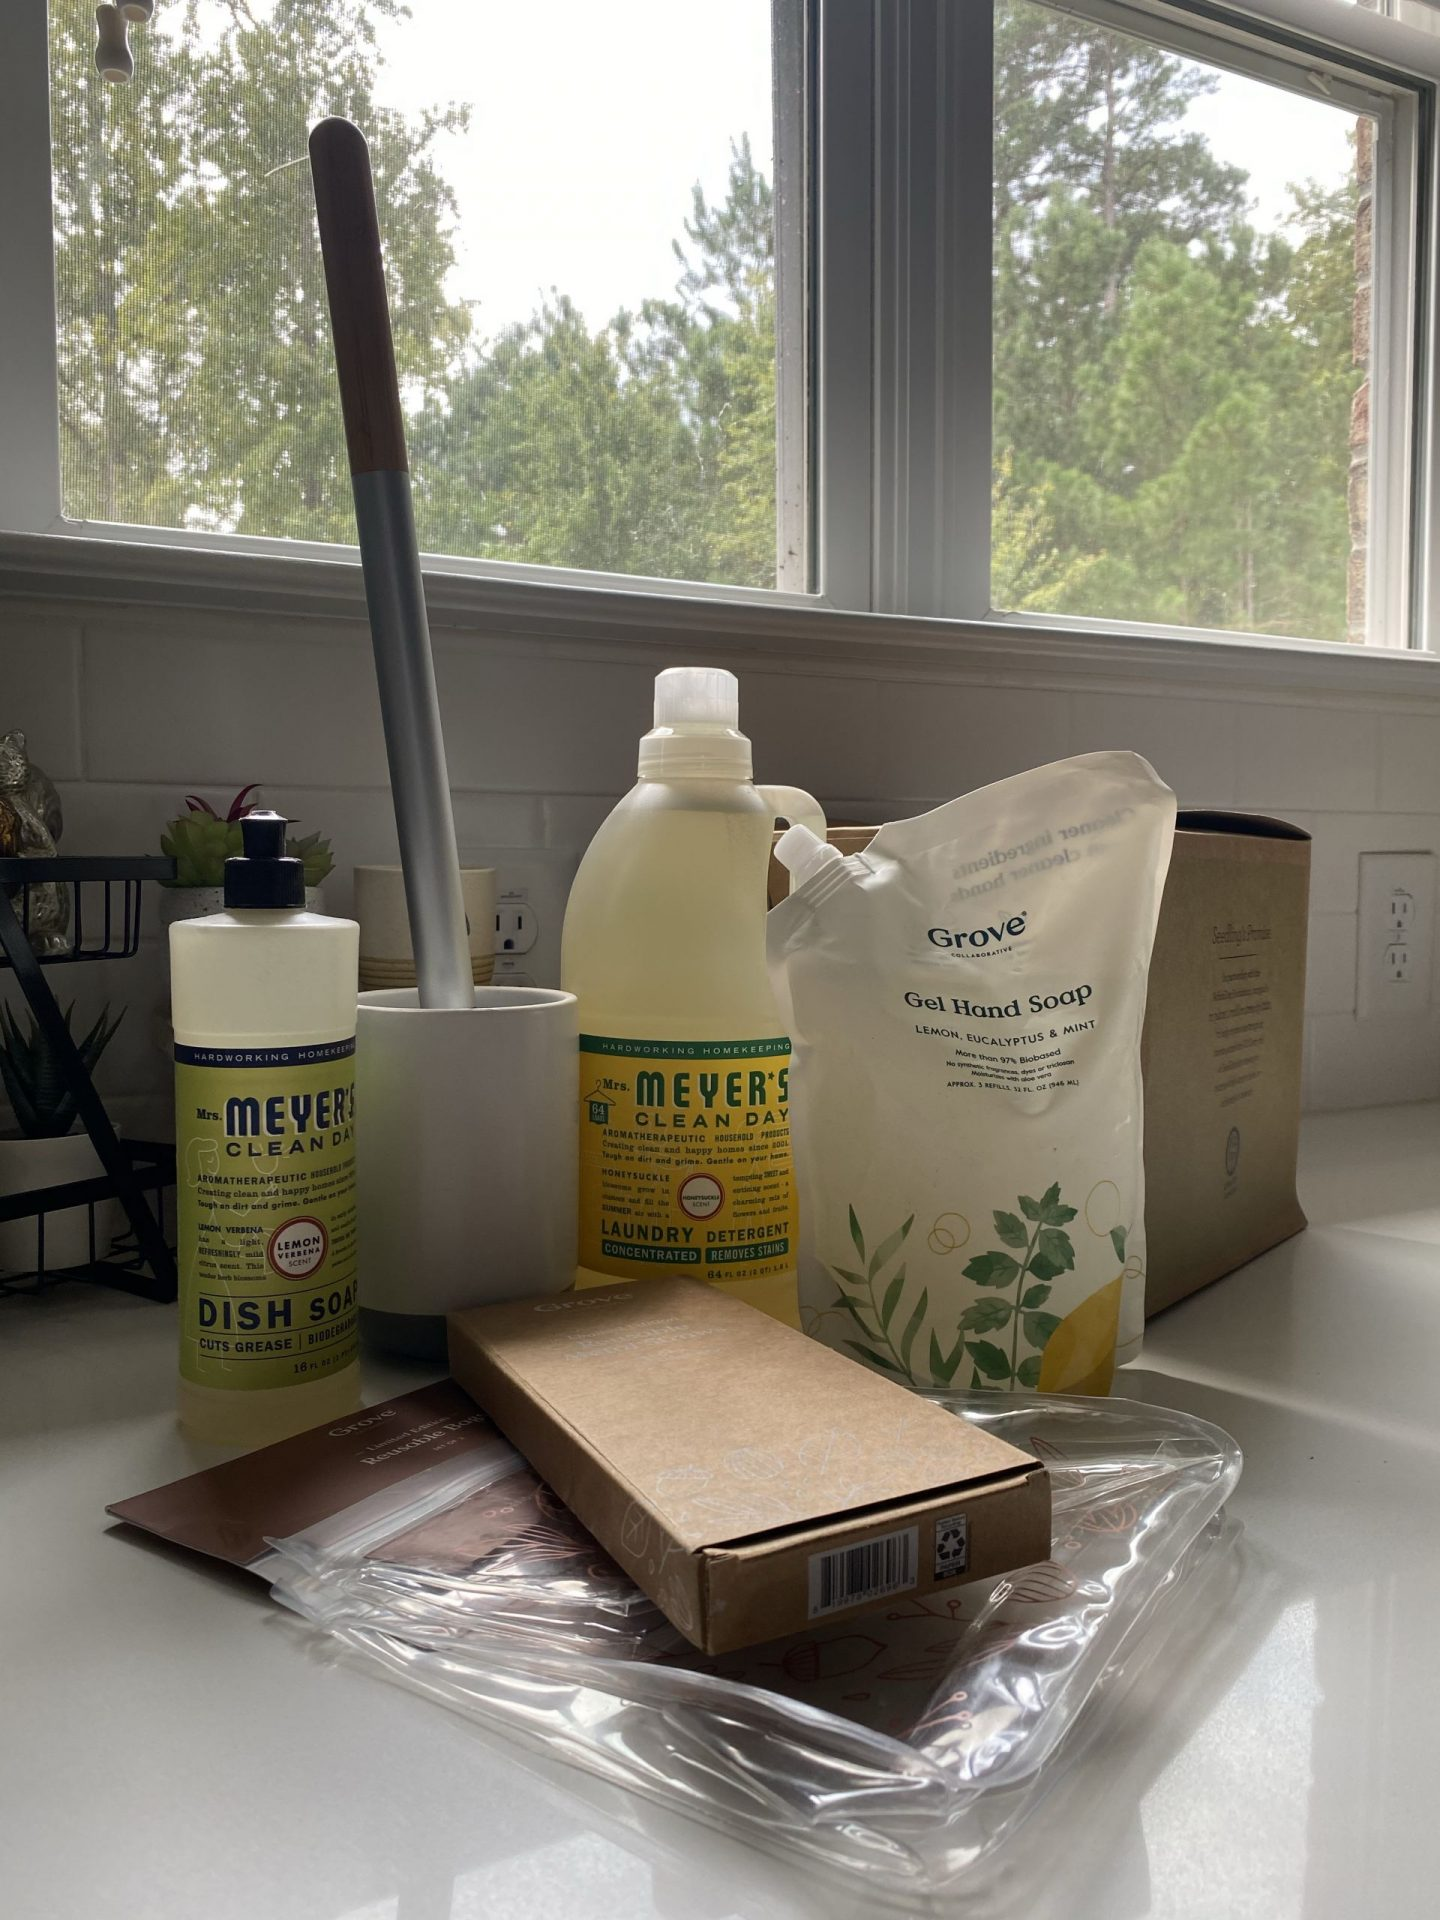 NC blogger Rebecca Lately is sharing her Grove Collaborative Fall Products from the pre-order! Check out what she got for her home!